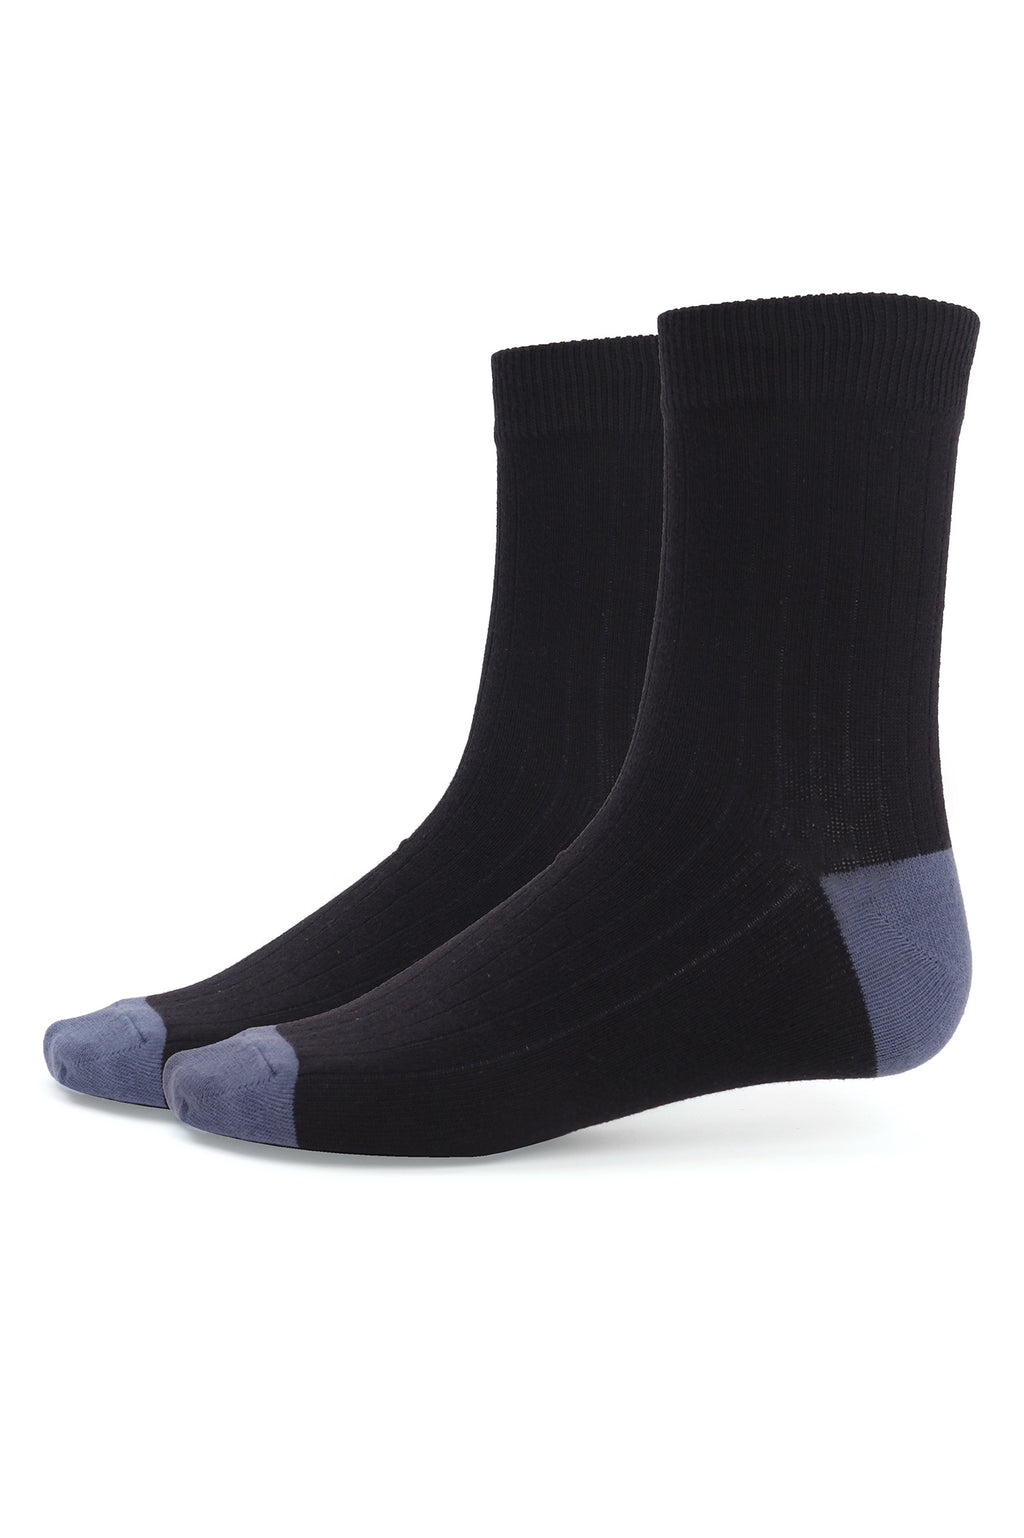 COMBO SOCKS-NAVY